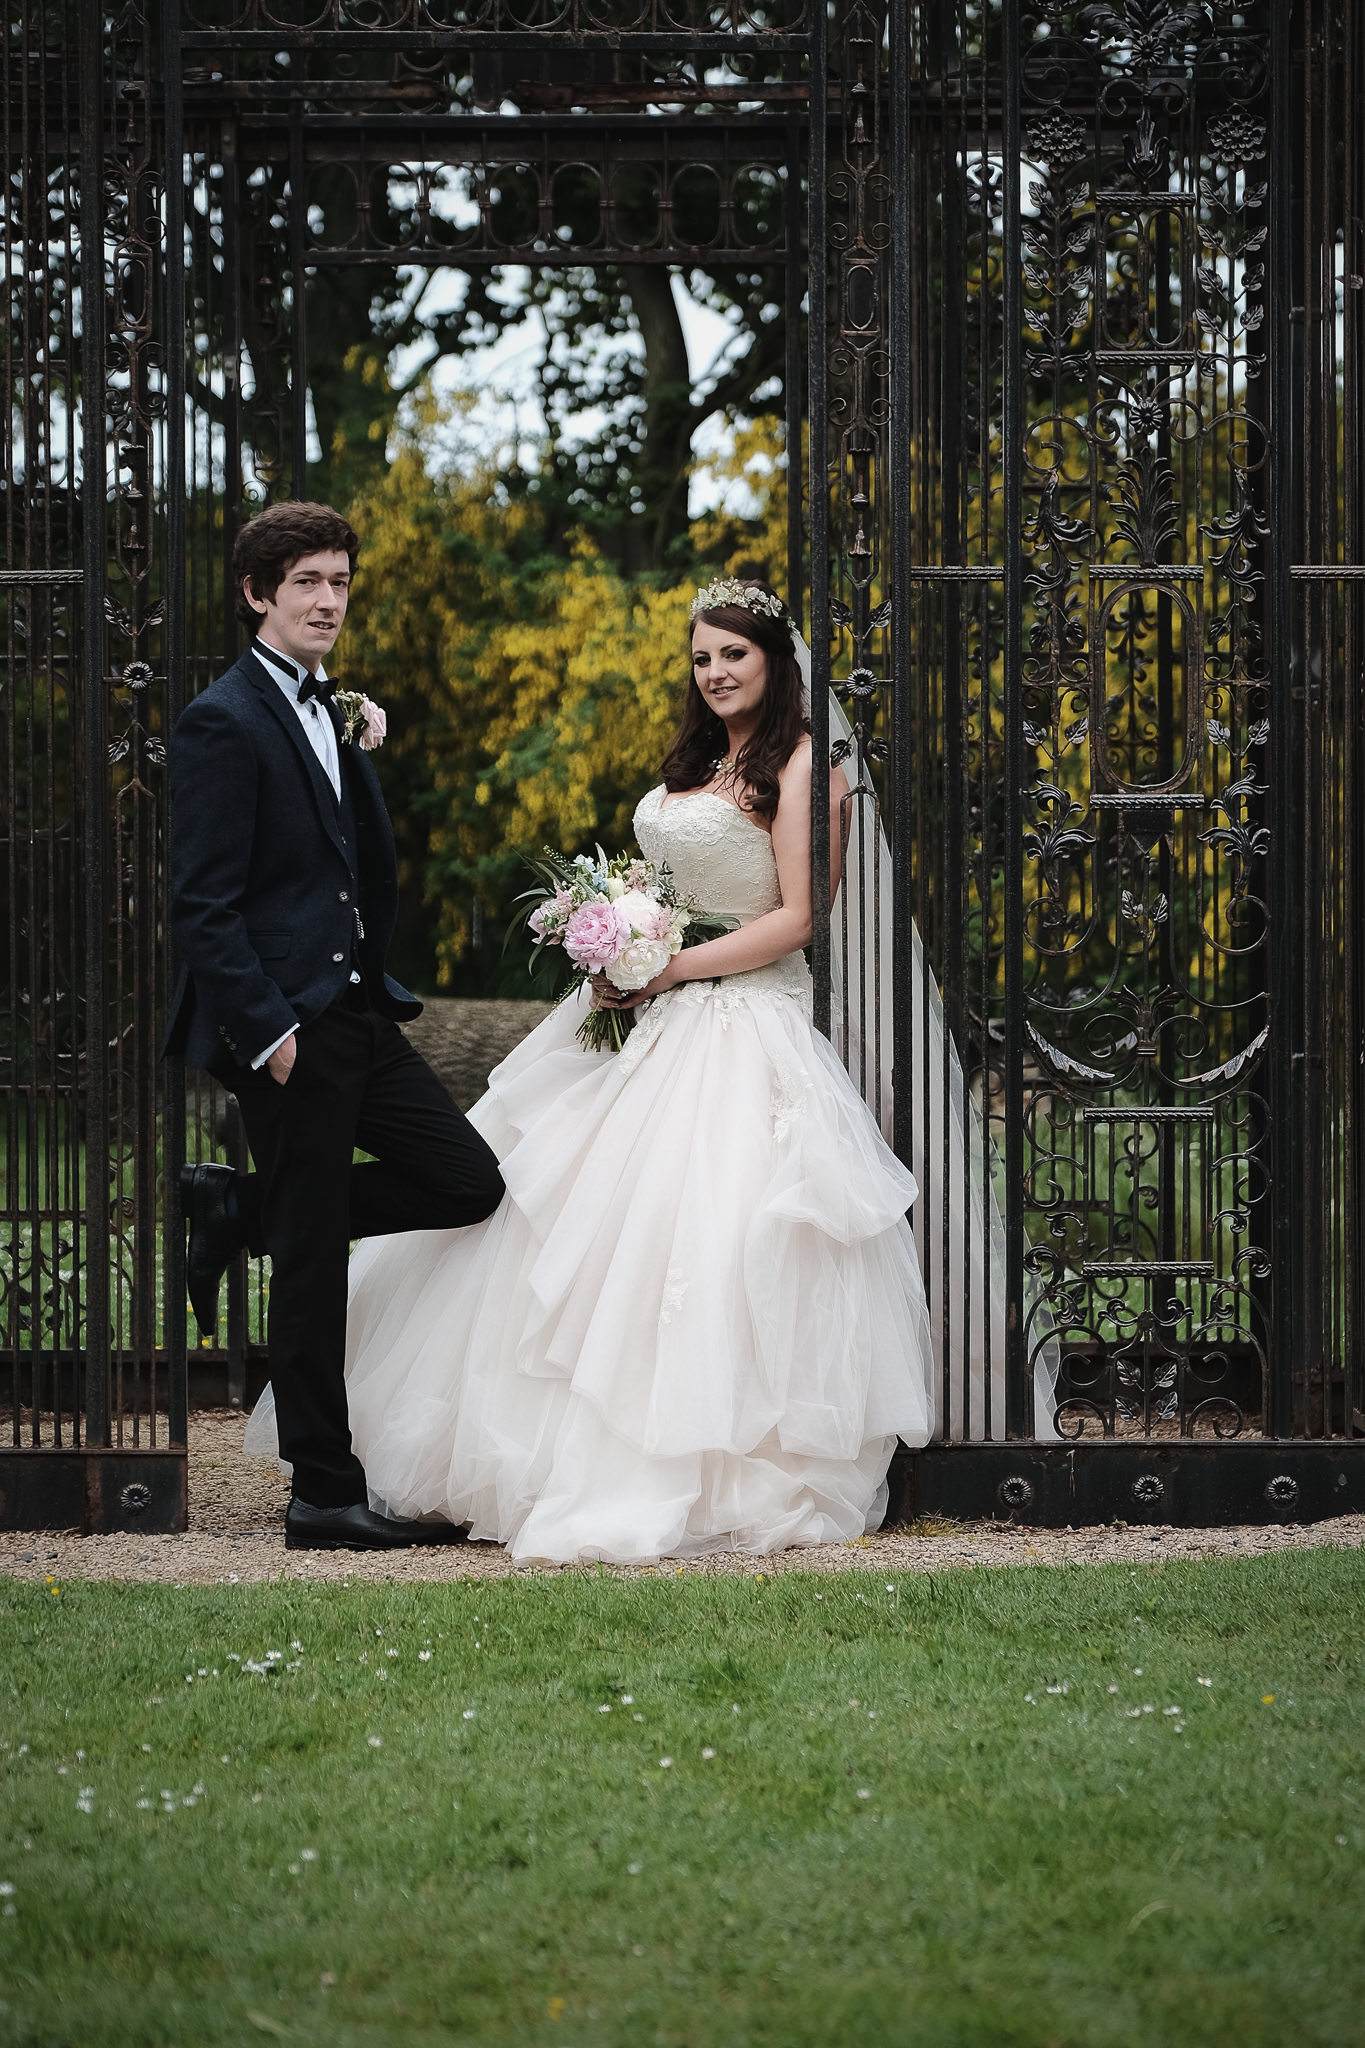 The bride and groom pose in the grounds at Newton Hall, Northumberland by Barry Forshaw